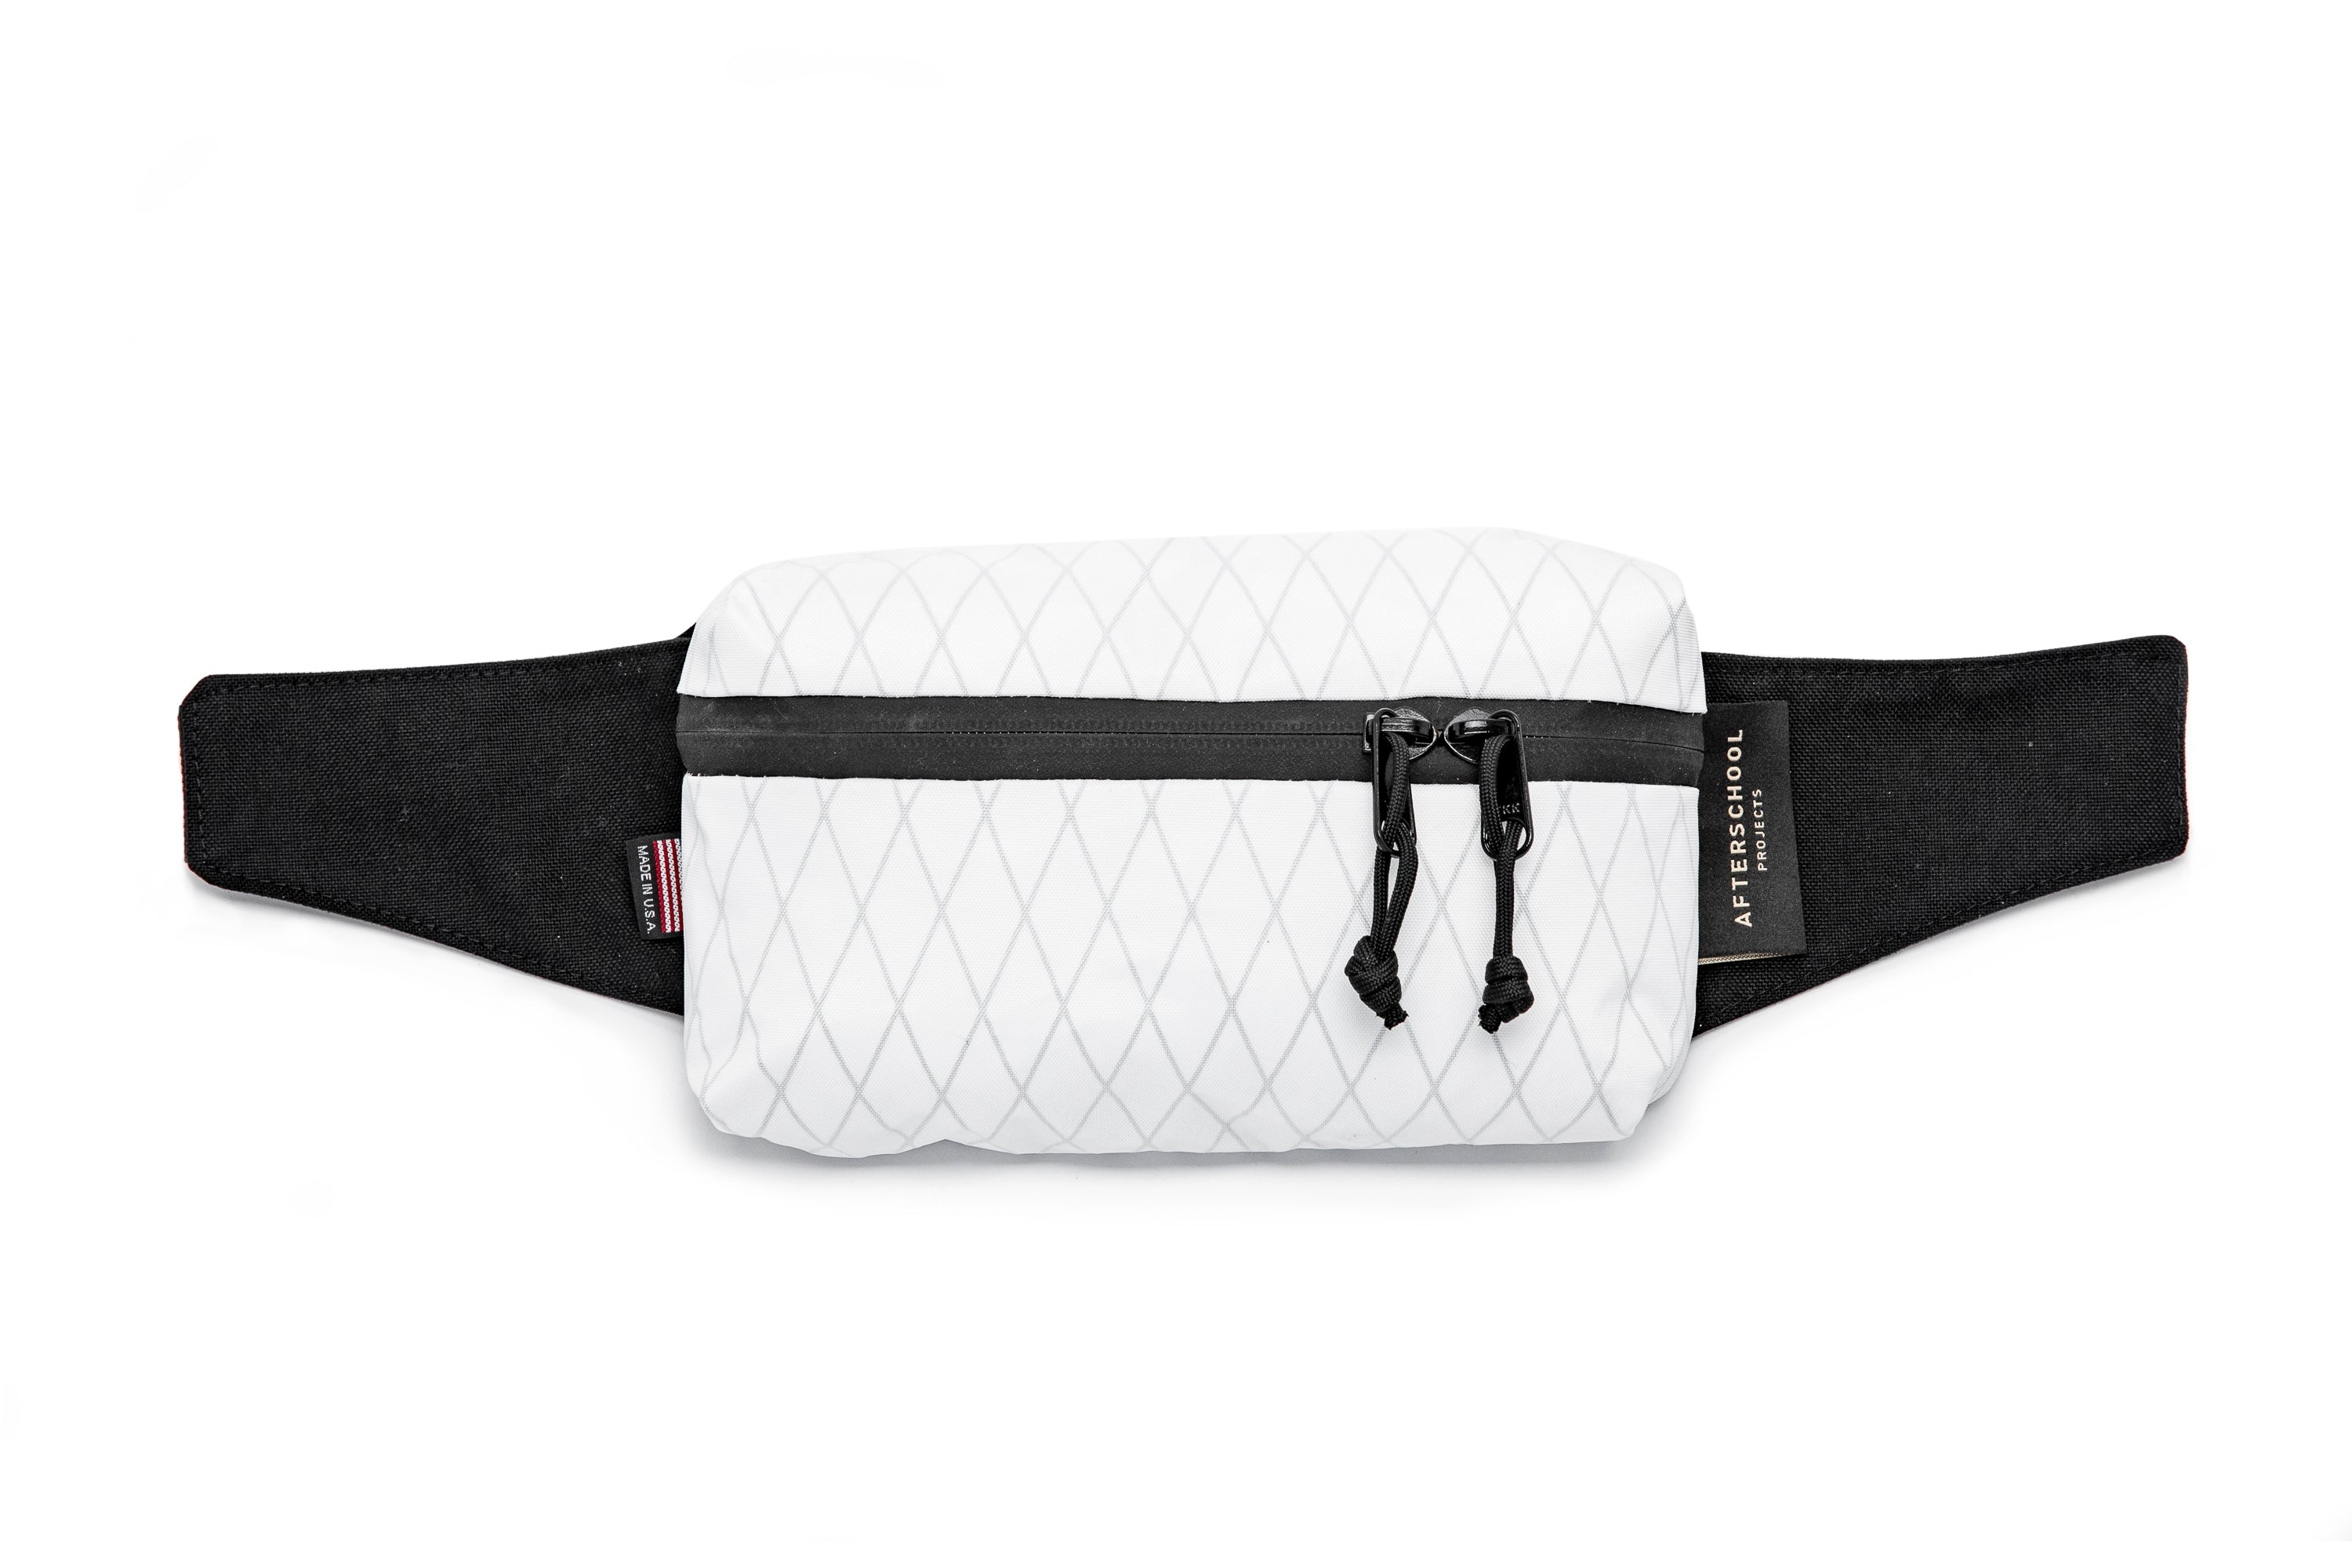 ASP Simple Hip Pack White